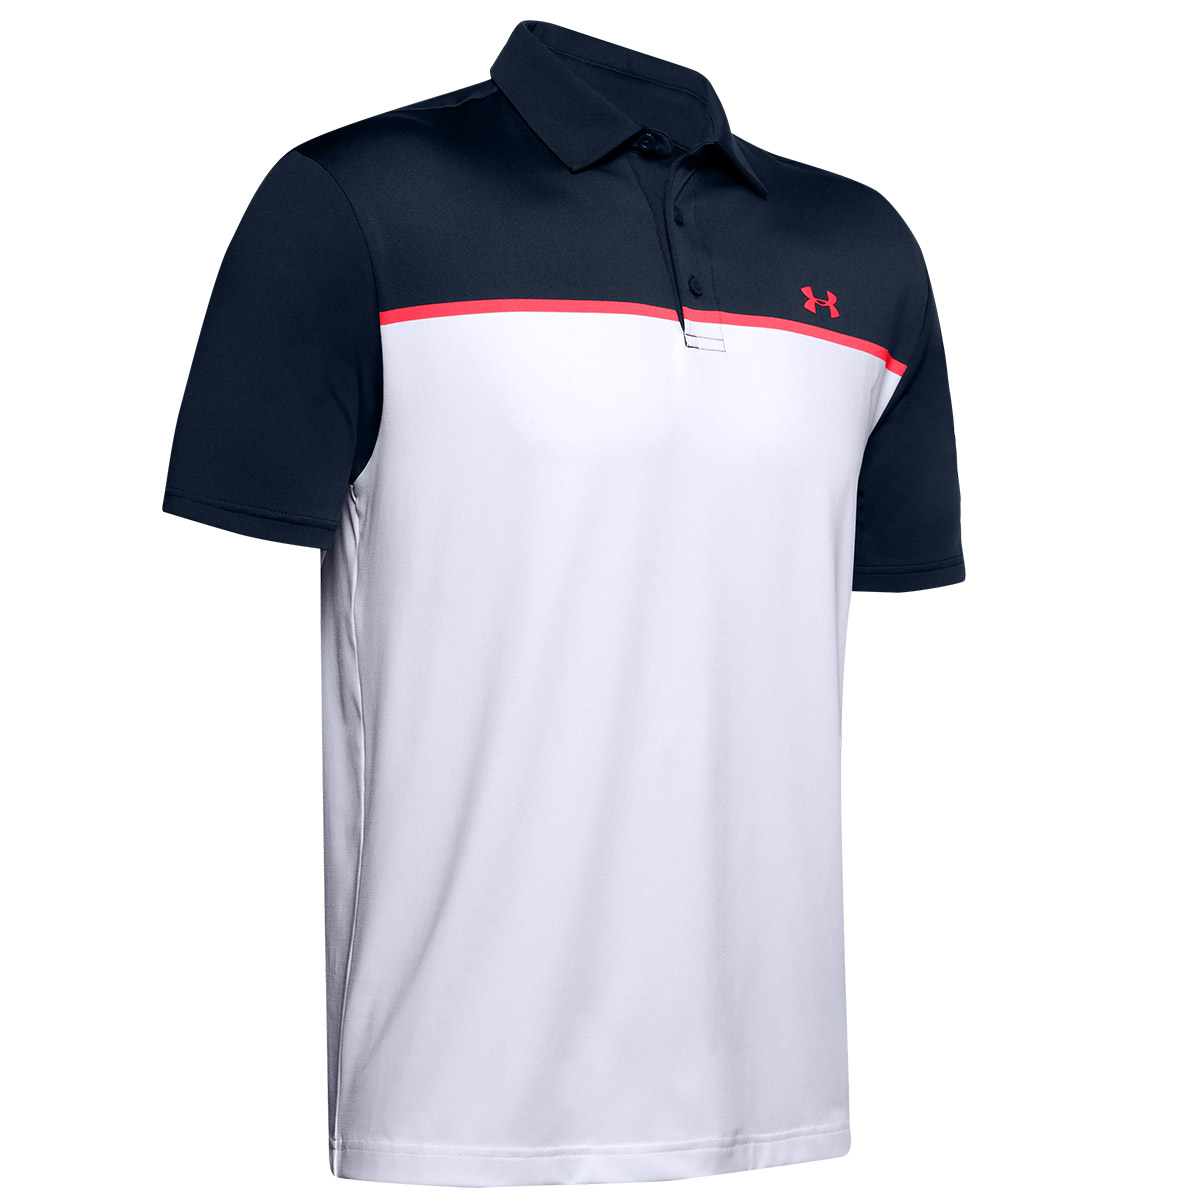 Exclusión Sillón Belicoso  under armour polo > Clearance shop